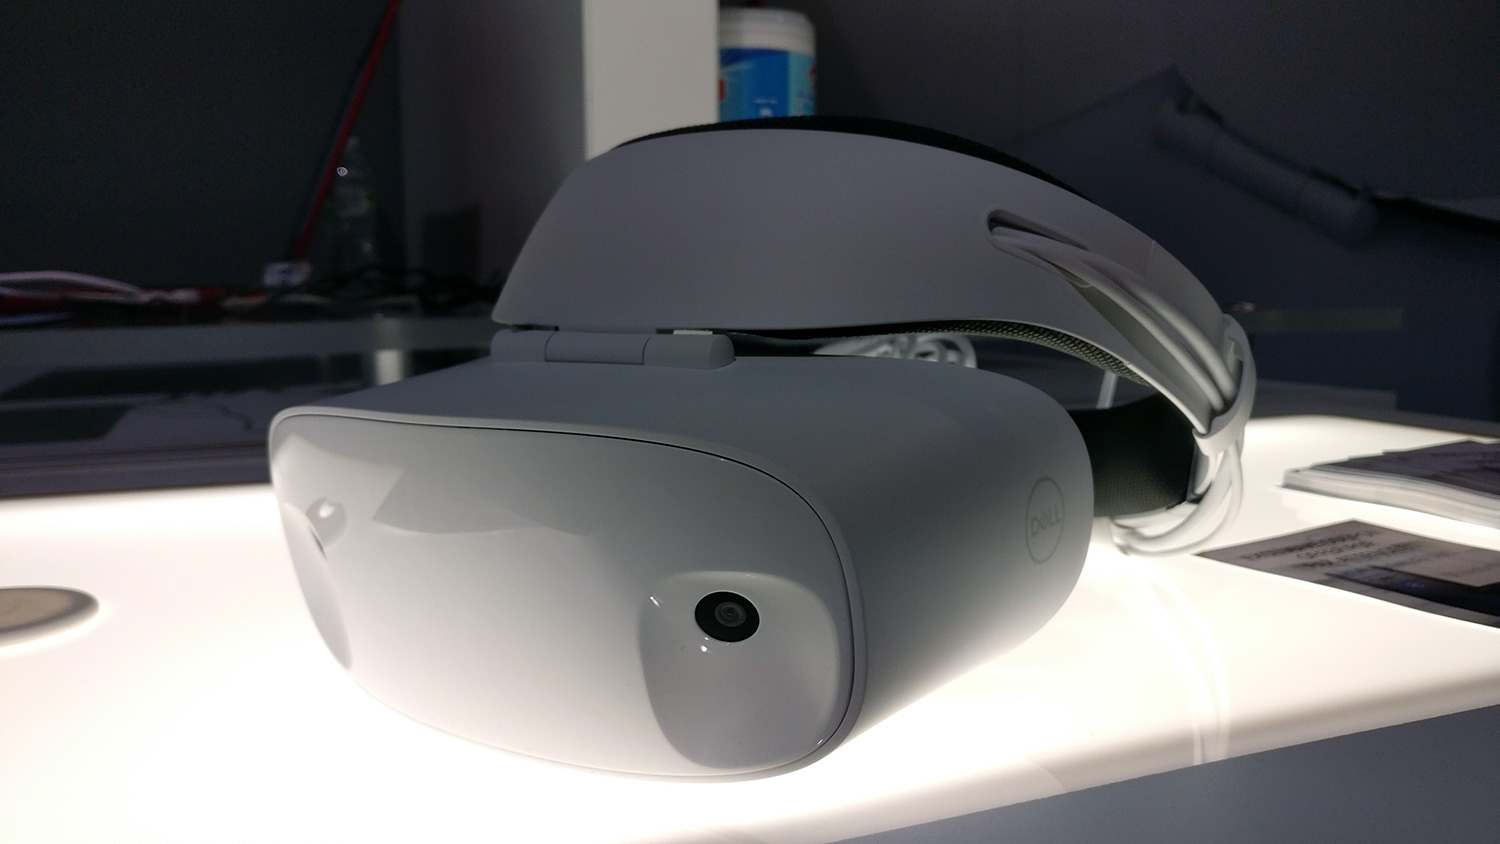 dell u0026 39 s visor is a gorgeous vr headset  but windows mixed